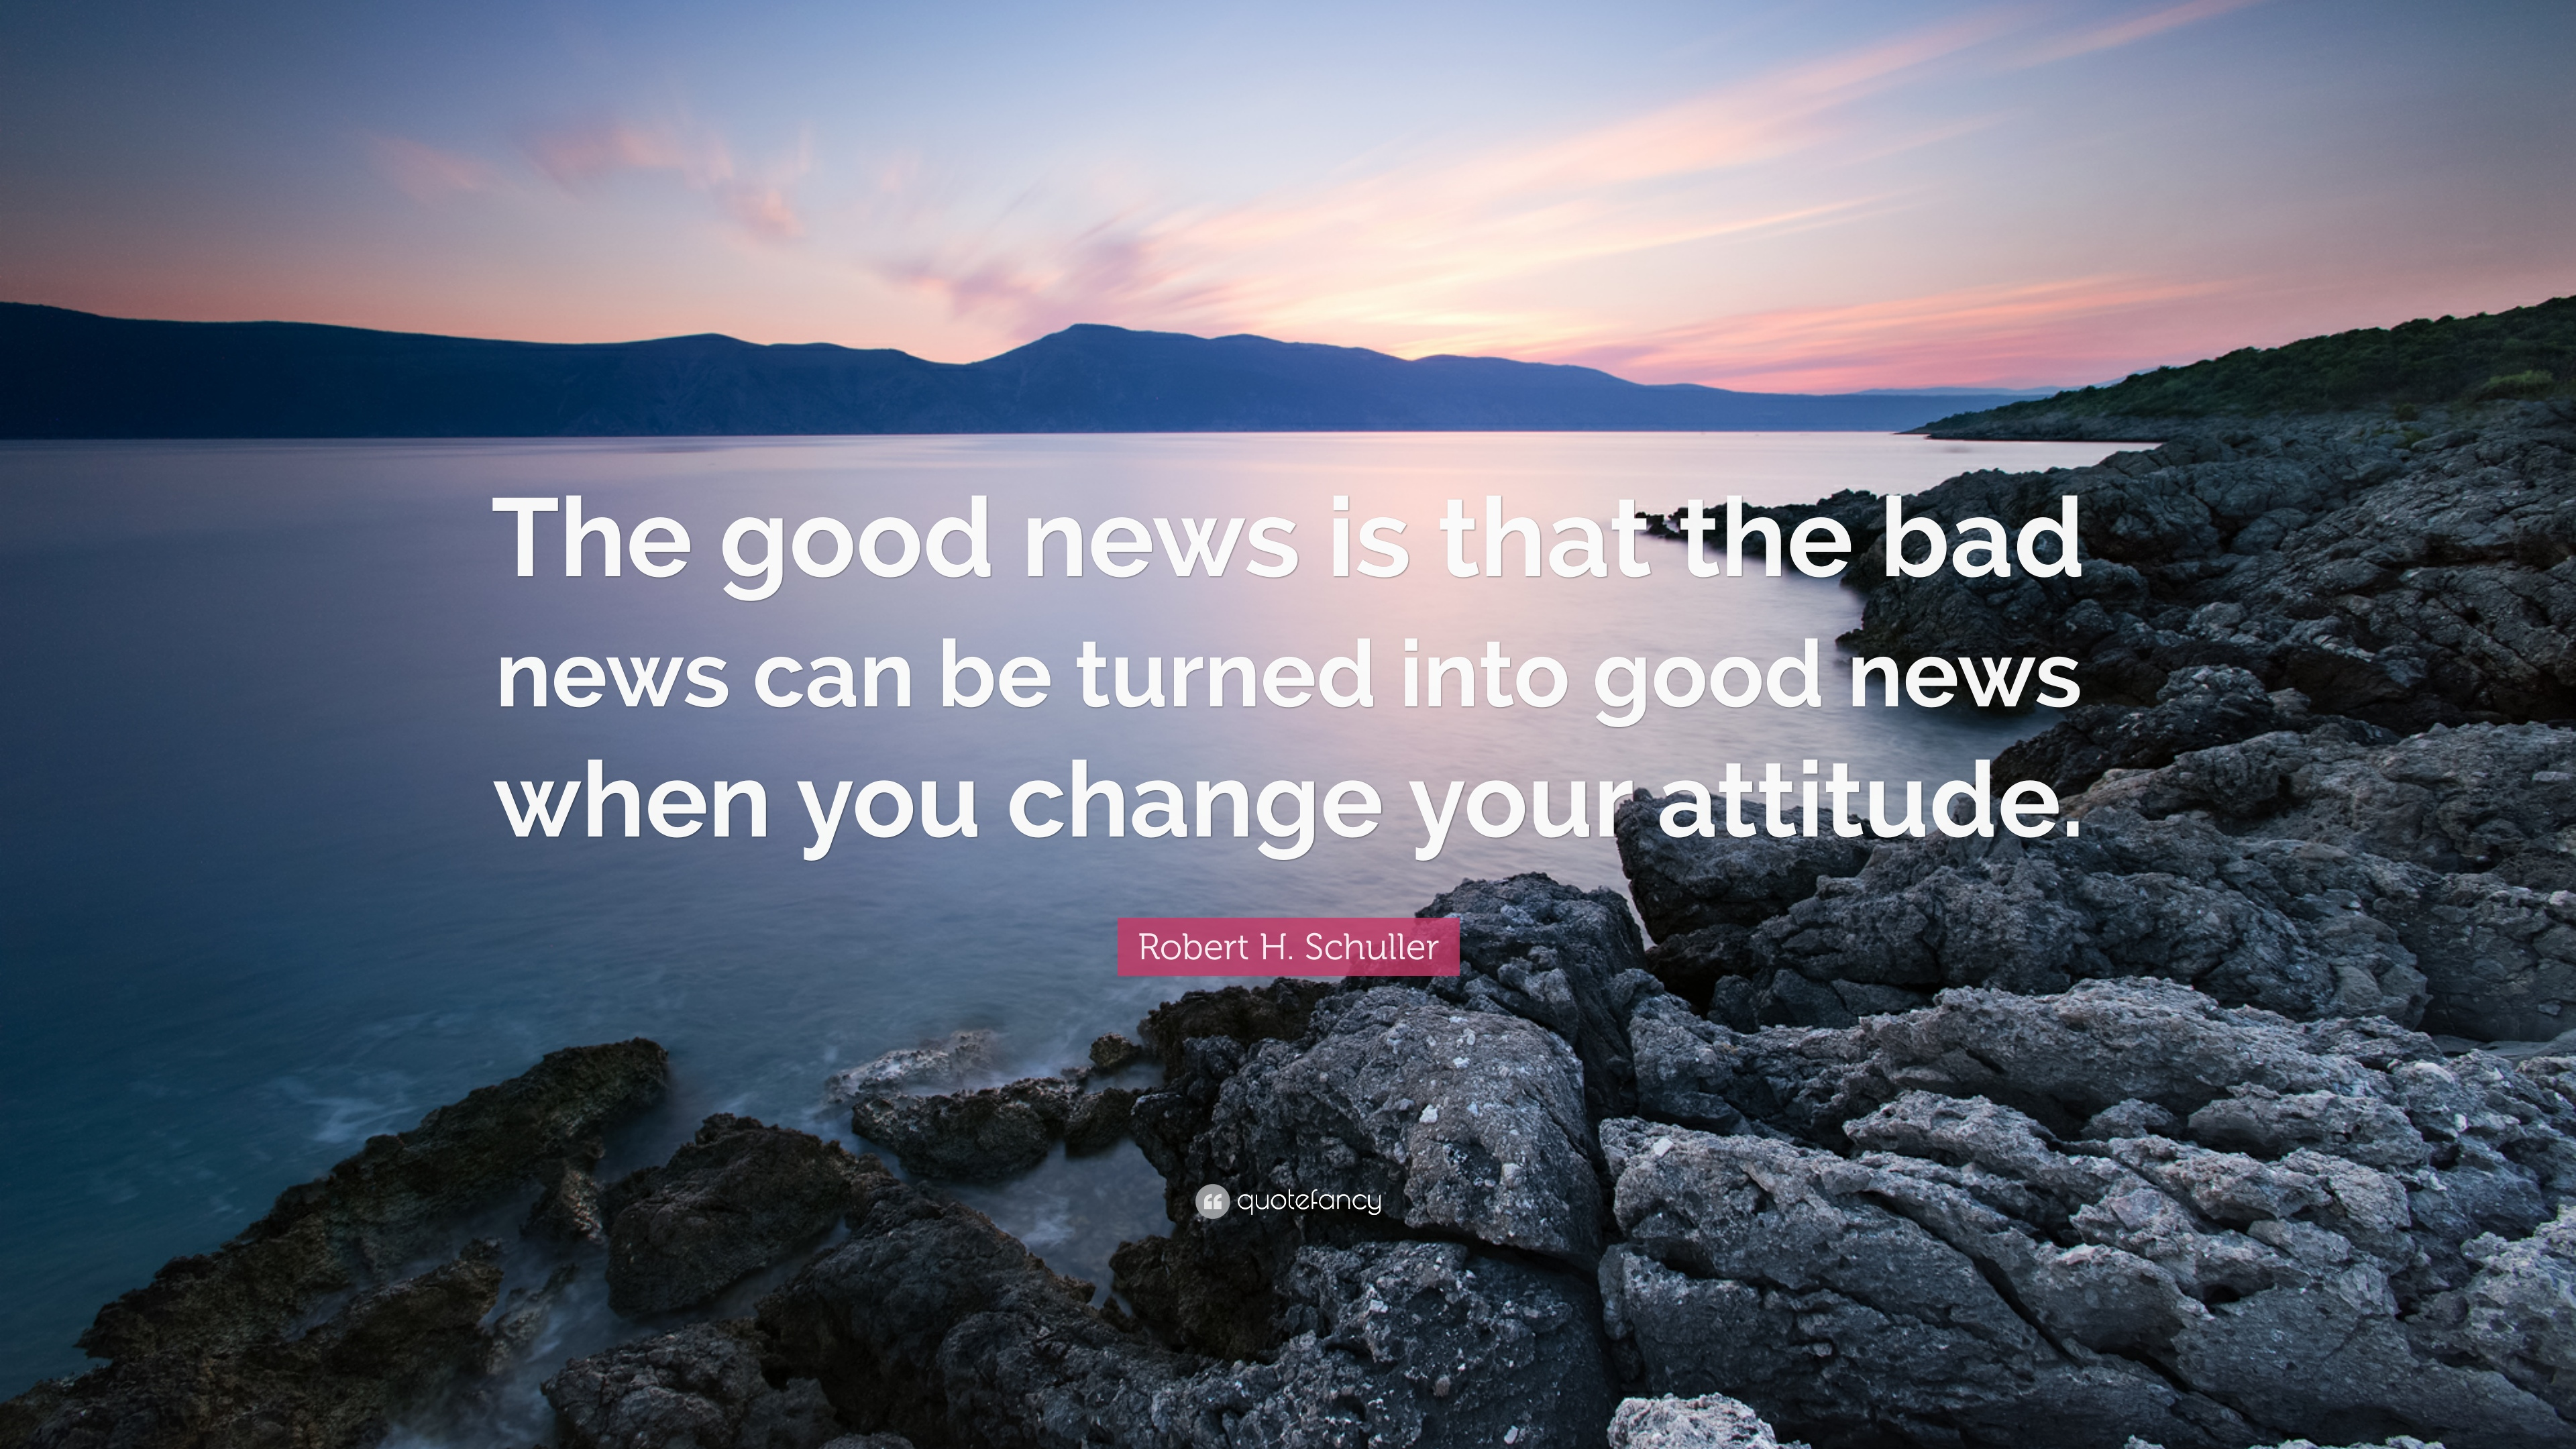 Good News Is That This Morning They >> Robert H Schuller Quote The Good News Is That The Bad News Can Be